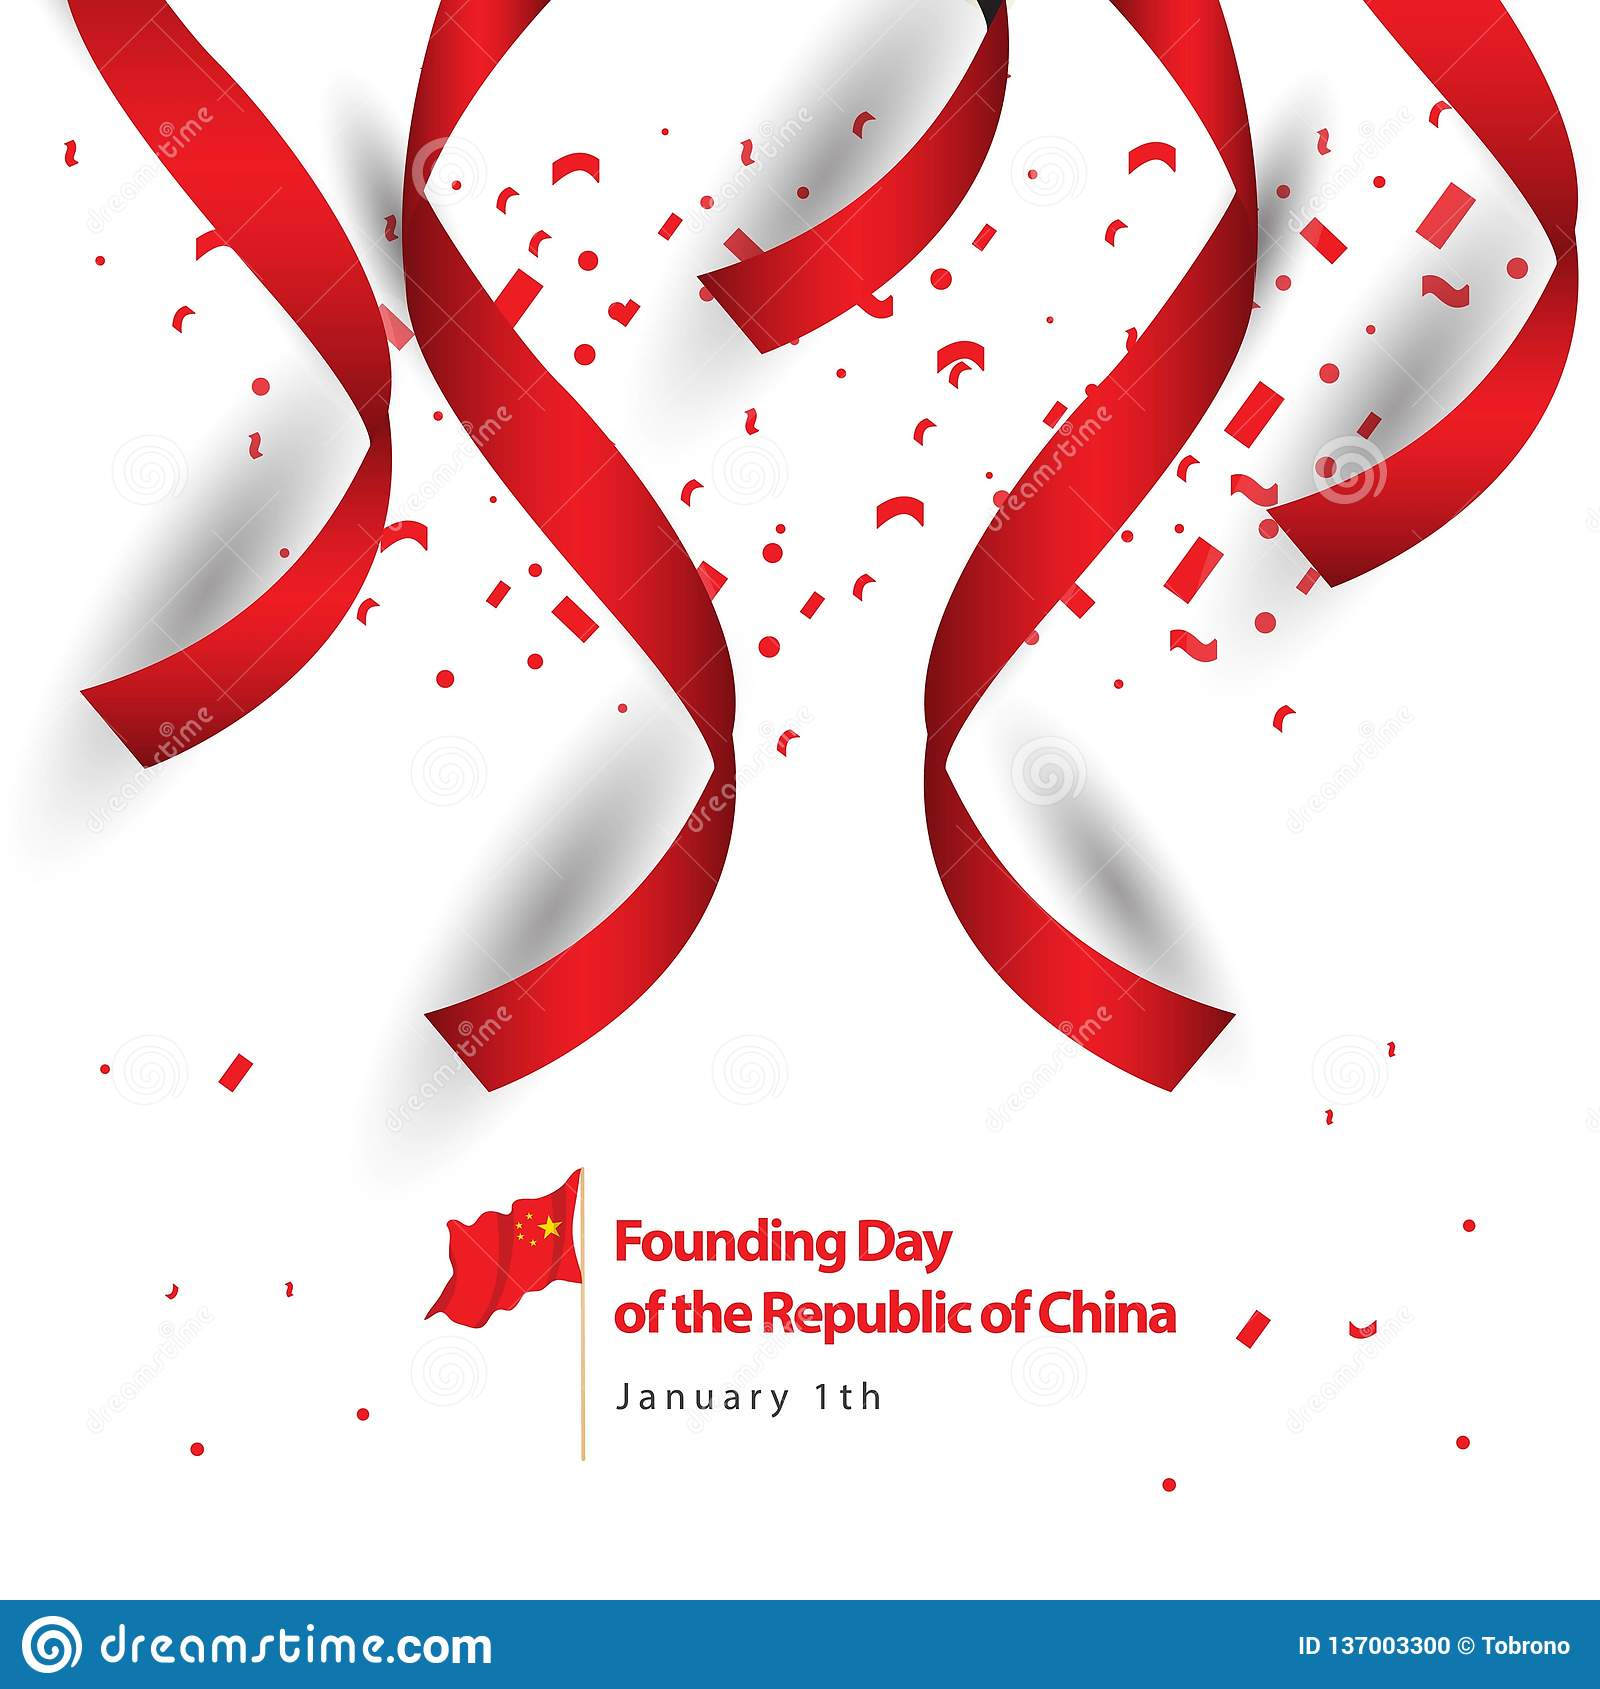 Founding Day of the Republic of China Vector Design Illustration